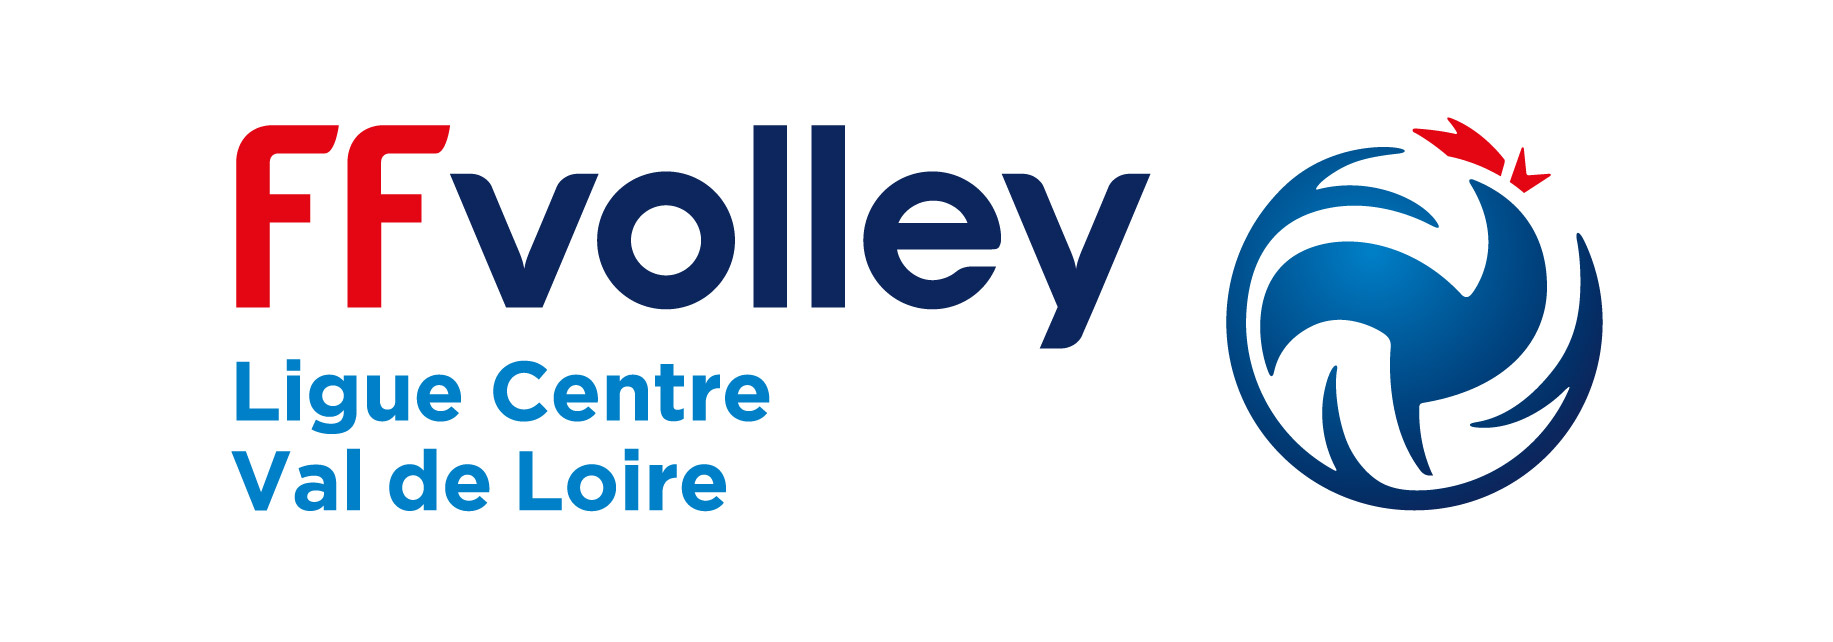 Logo Ligue du Centre Val de Loire de Volley Ball 17 18